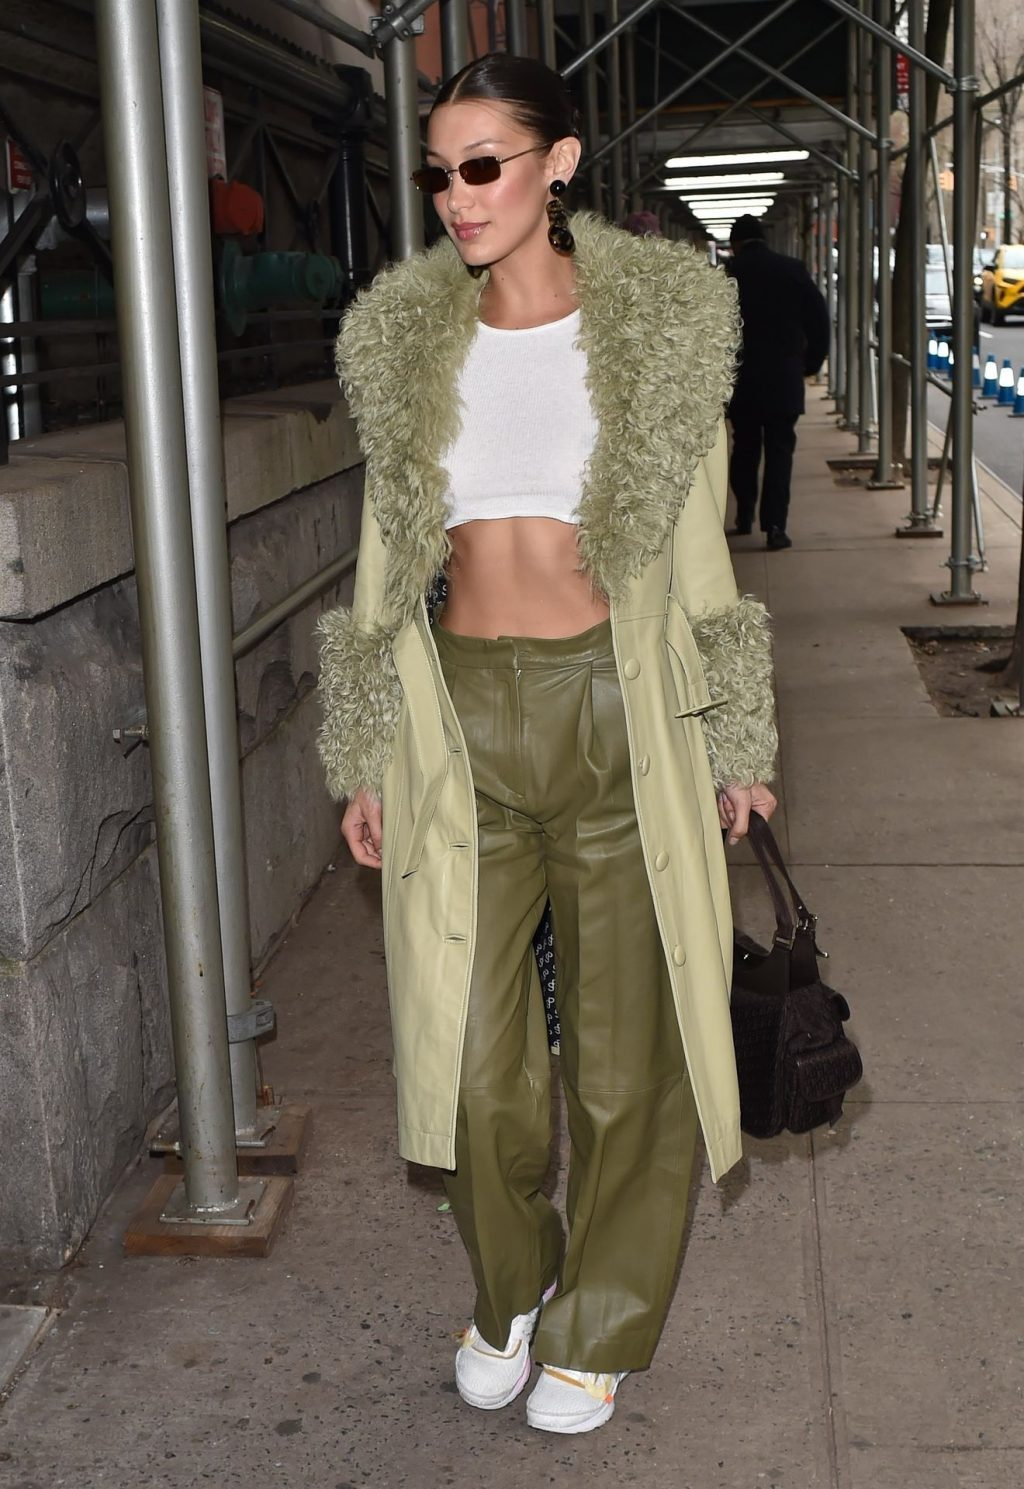 Bella Hadid See through The Fappening Blog 10 1024x1489 - Braless Bella Hadid Arrives at the Park Avenue Armory for the Marc Jacobs Fashion Show (59 Photos)